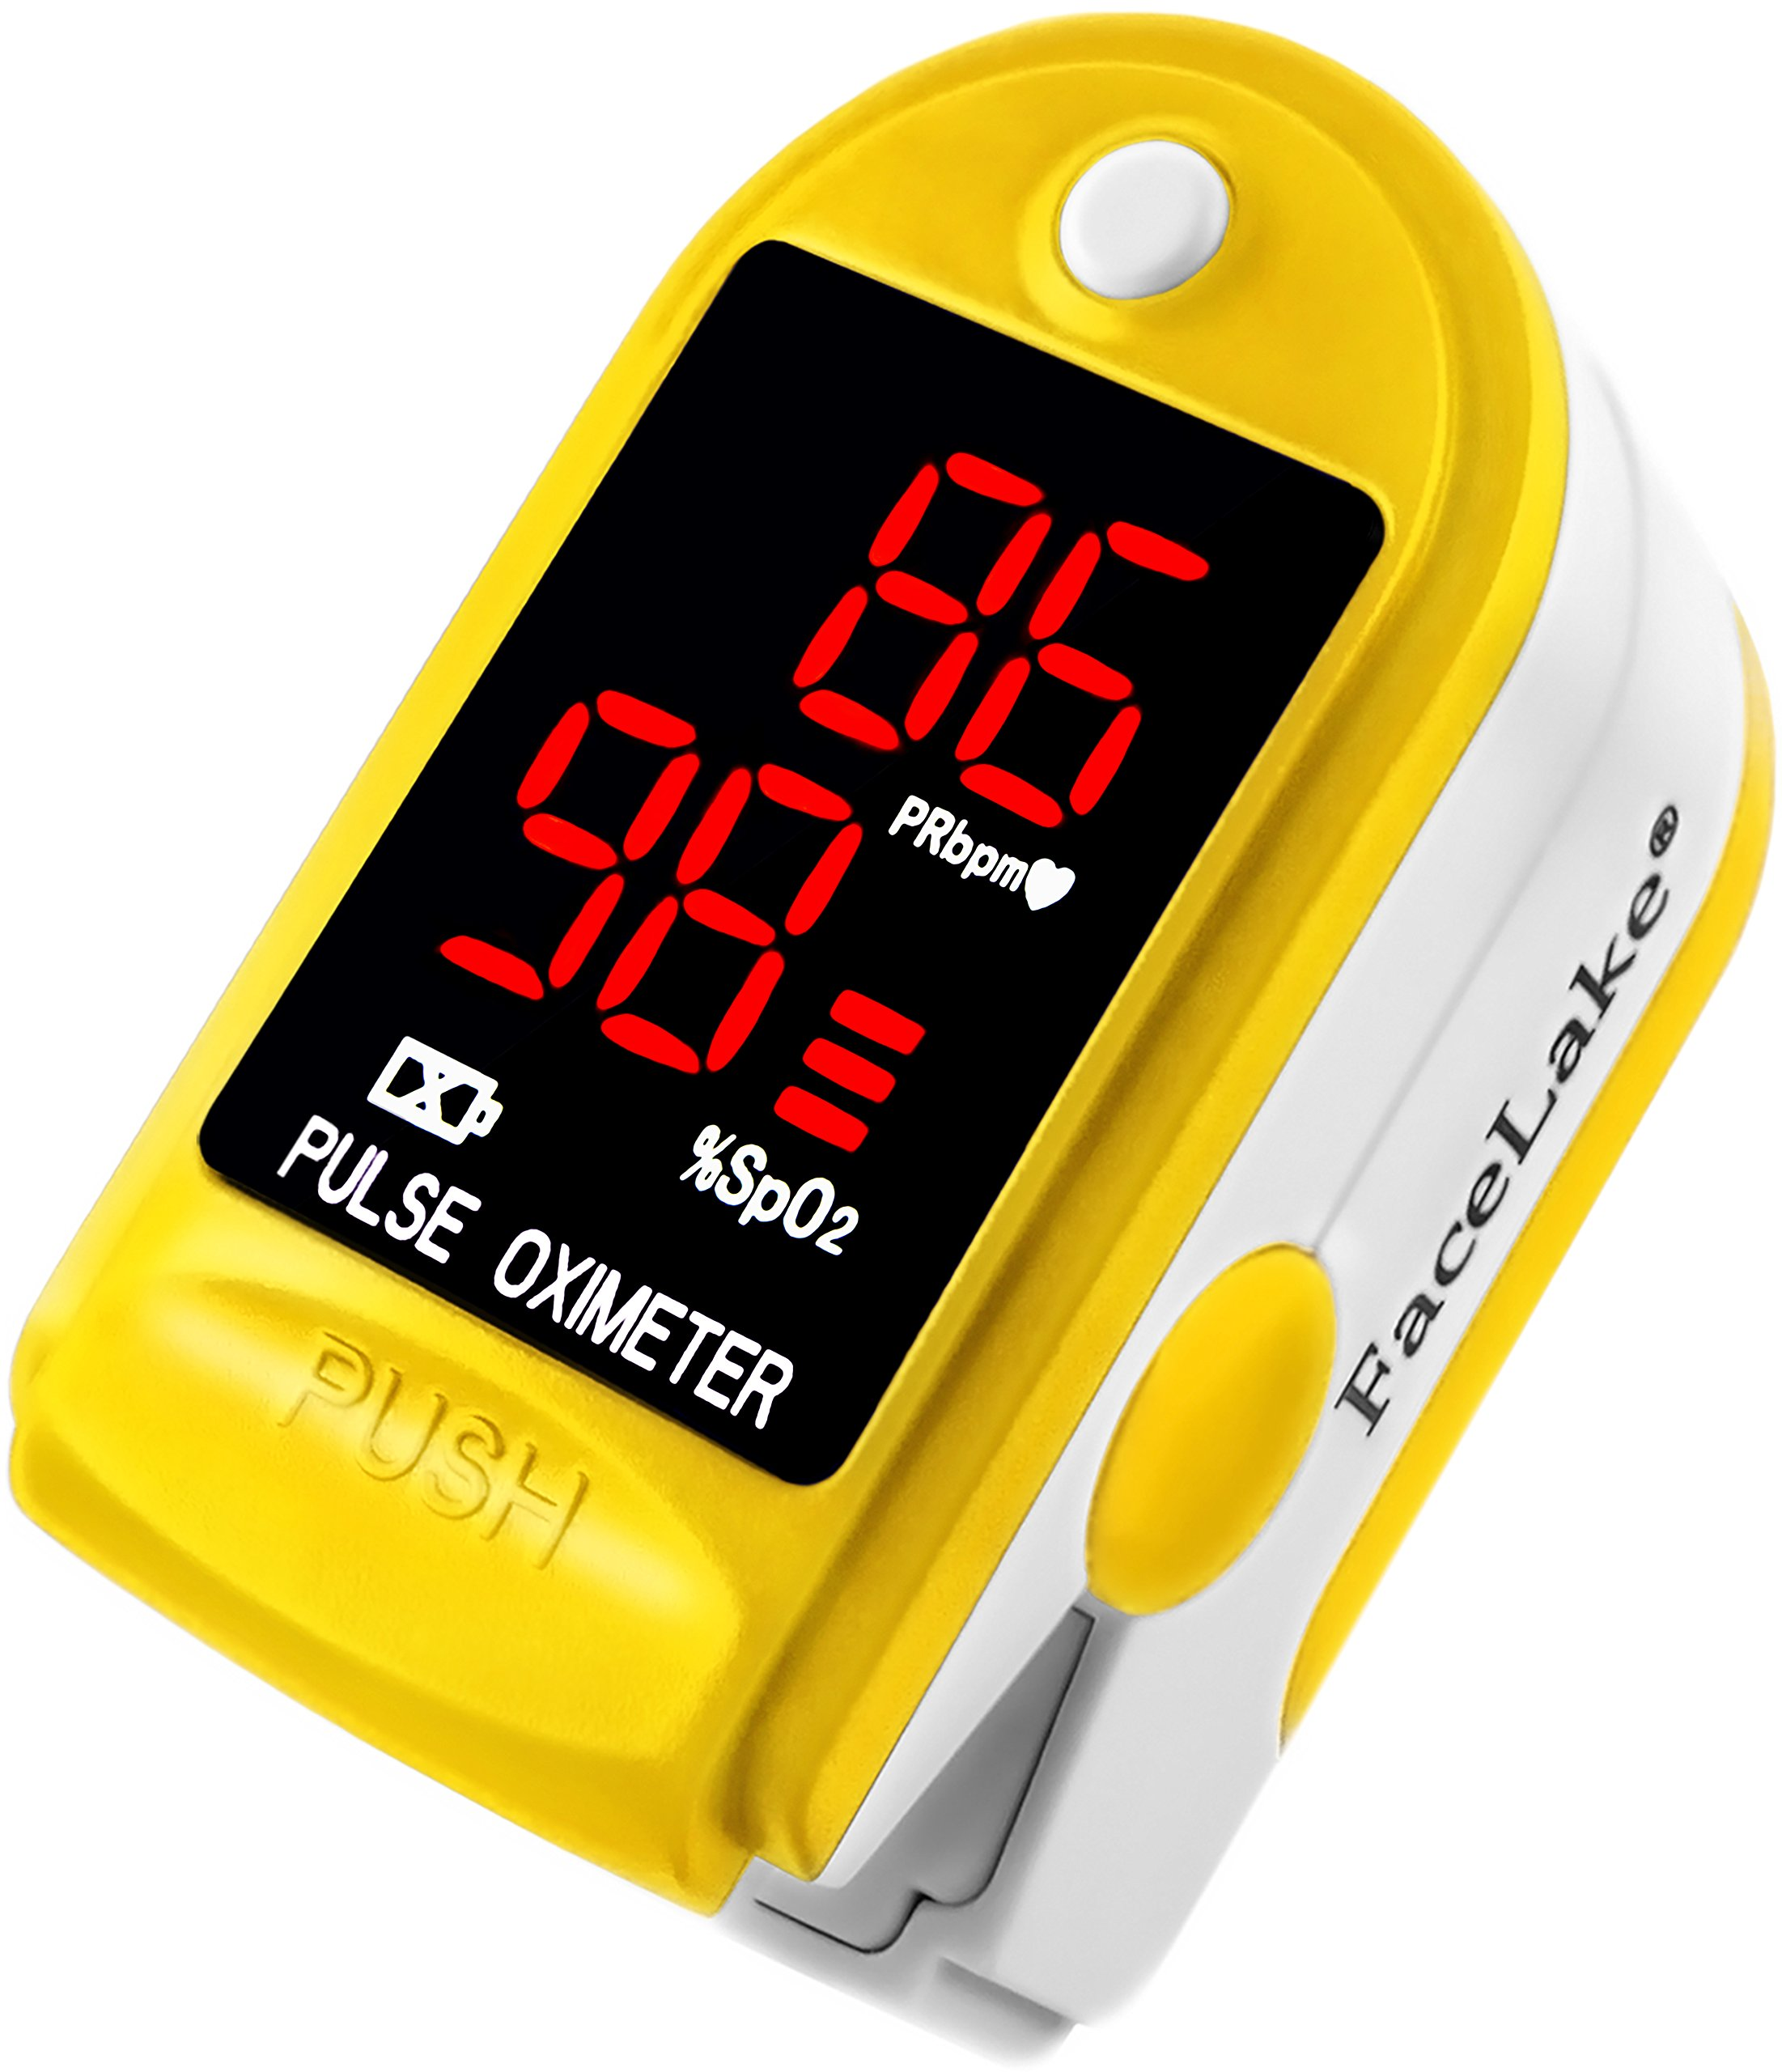 FaceLake FL400 Yellow Pulse Oximeter Blood Oxygen Saturation Monitor, Neck/wrist Cord, Carrying Case and Batteries included